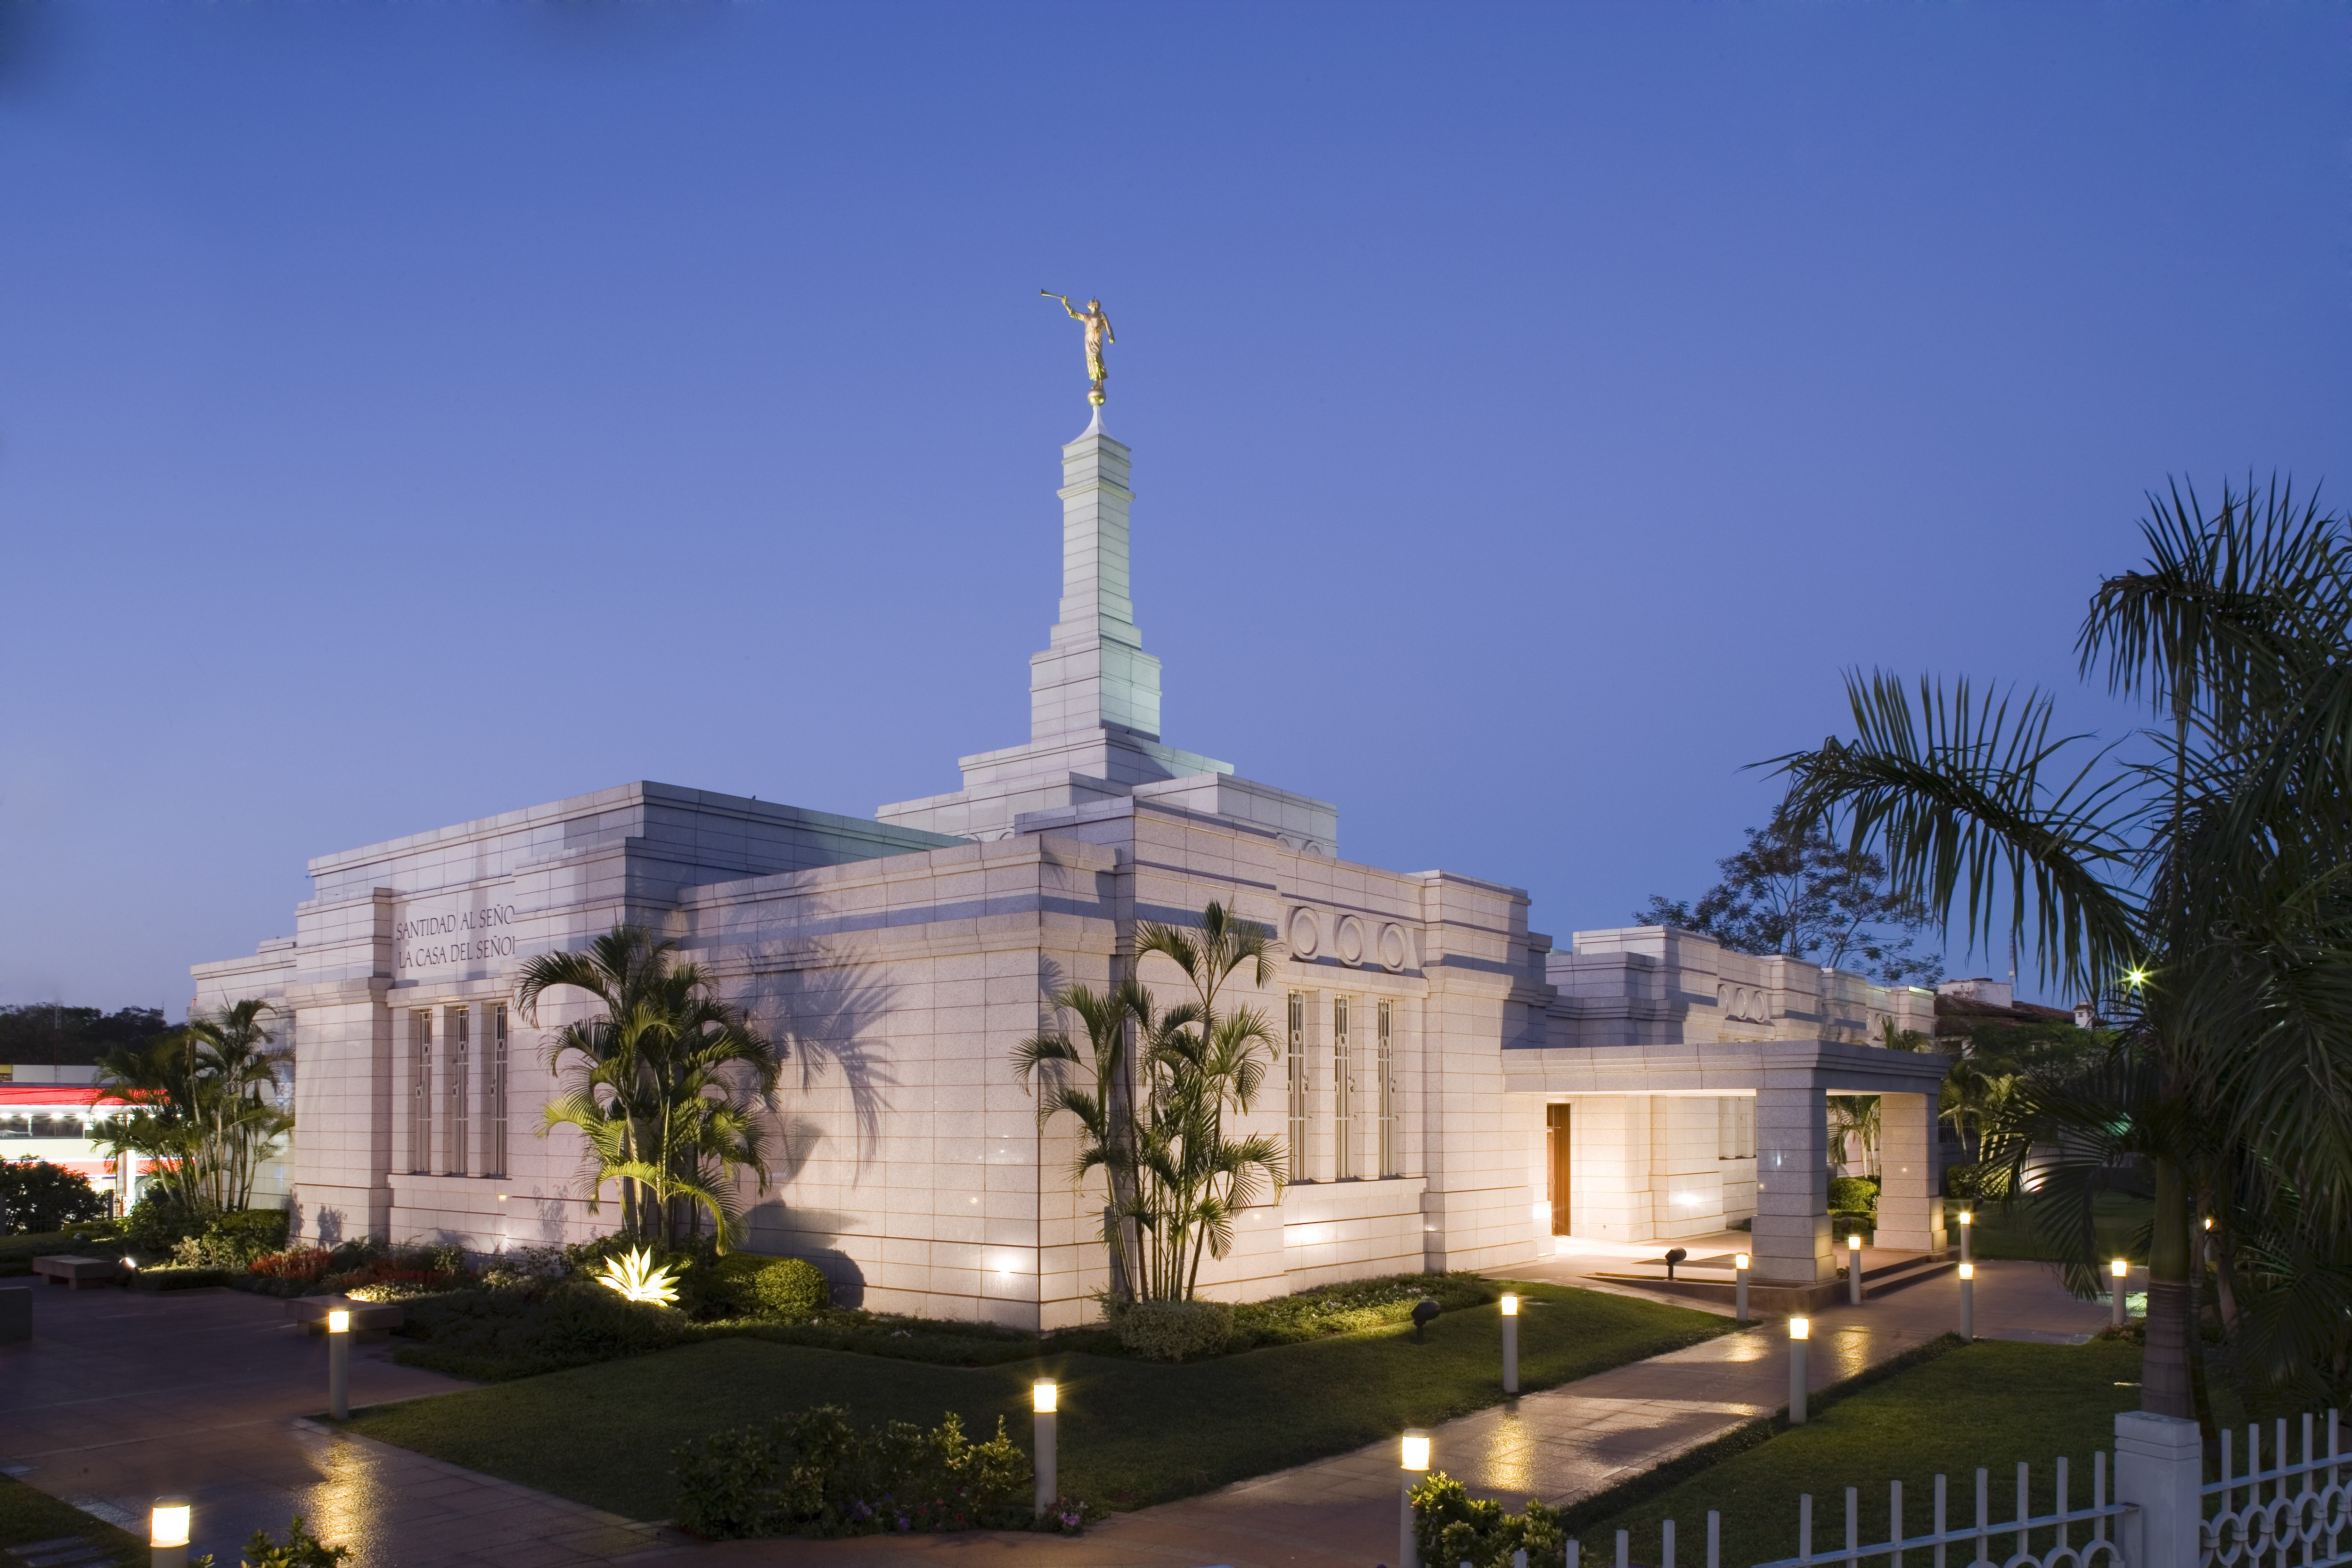 The Asuncion Paraguay Temple will be rededicated November 3, 2019.